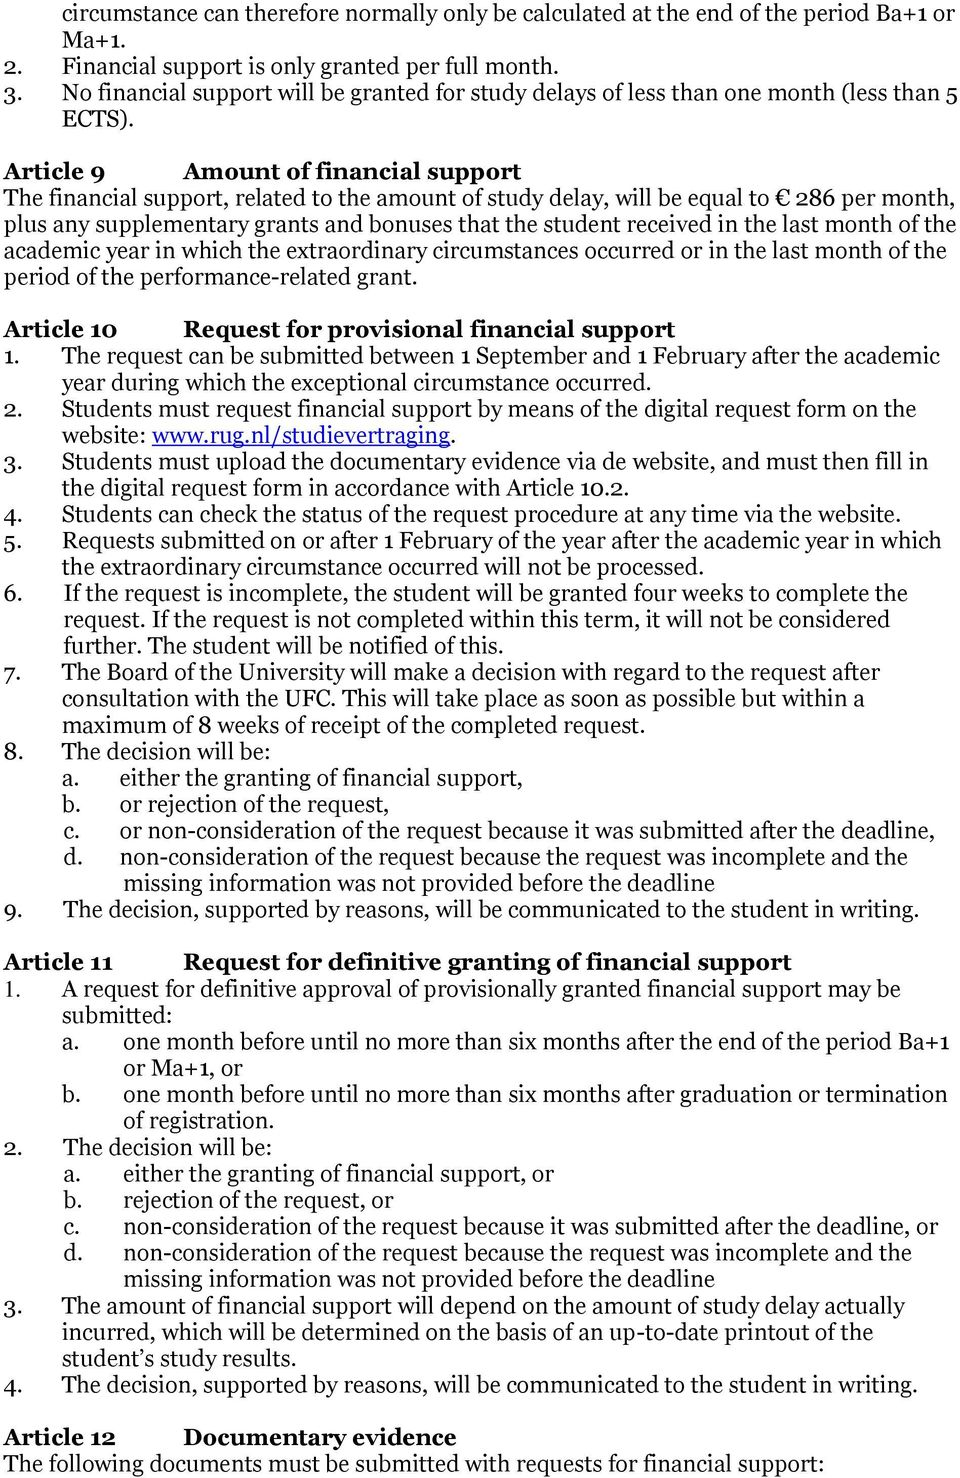 Article 9 Amount of financial support The financial support, related to the amount of study delay, will be equal to 286 per month, plus any supplementary grants and bonuses that the student received